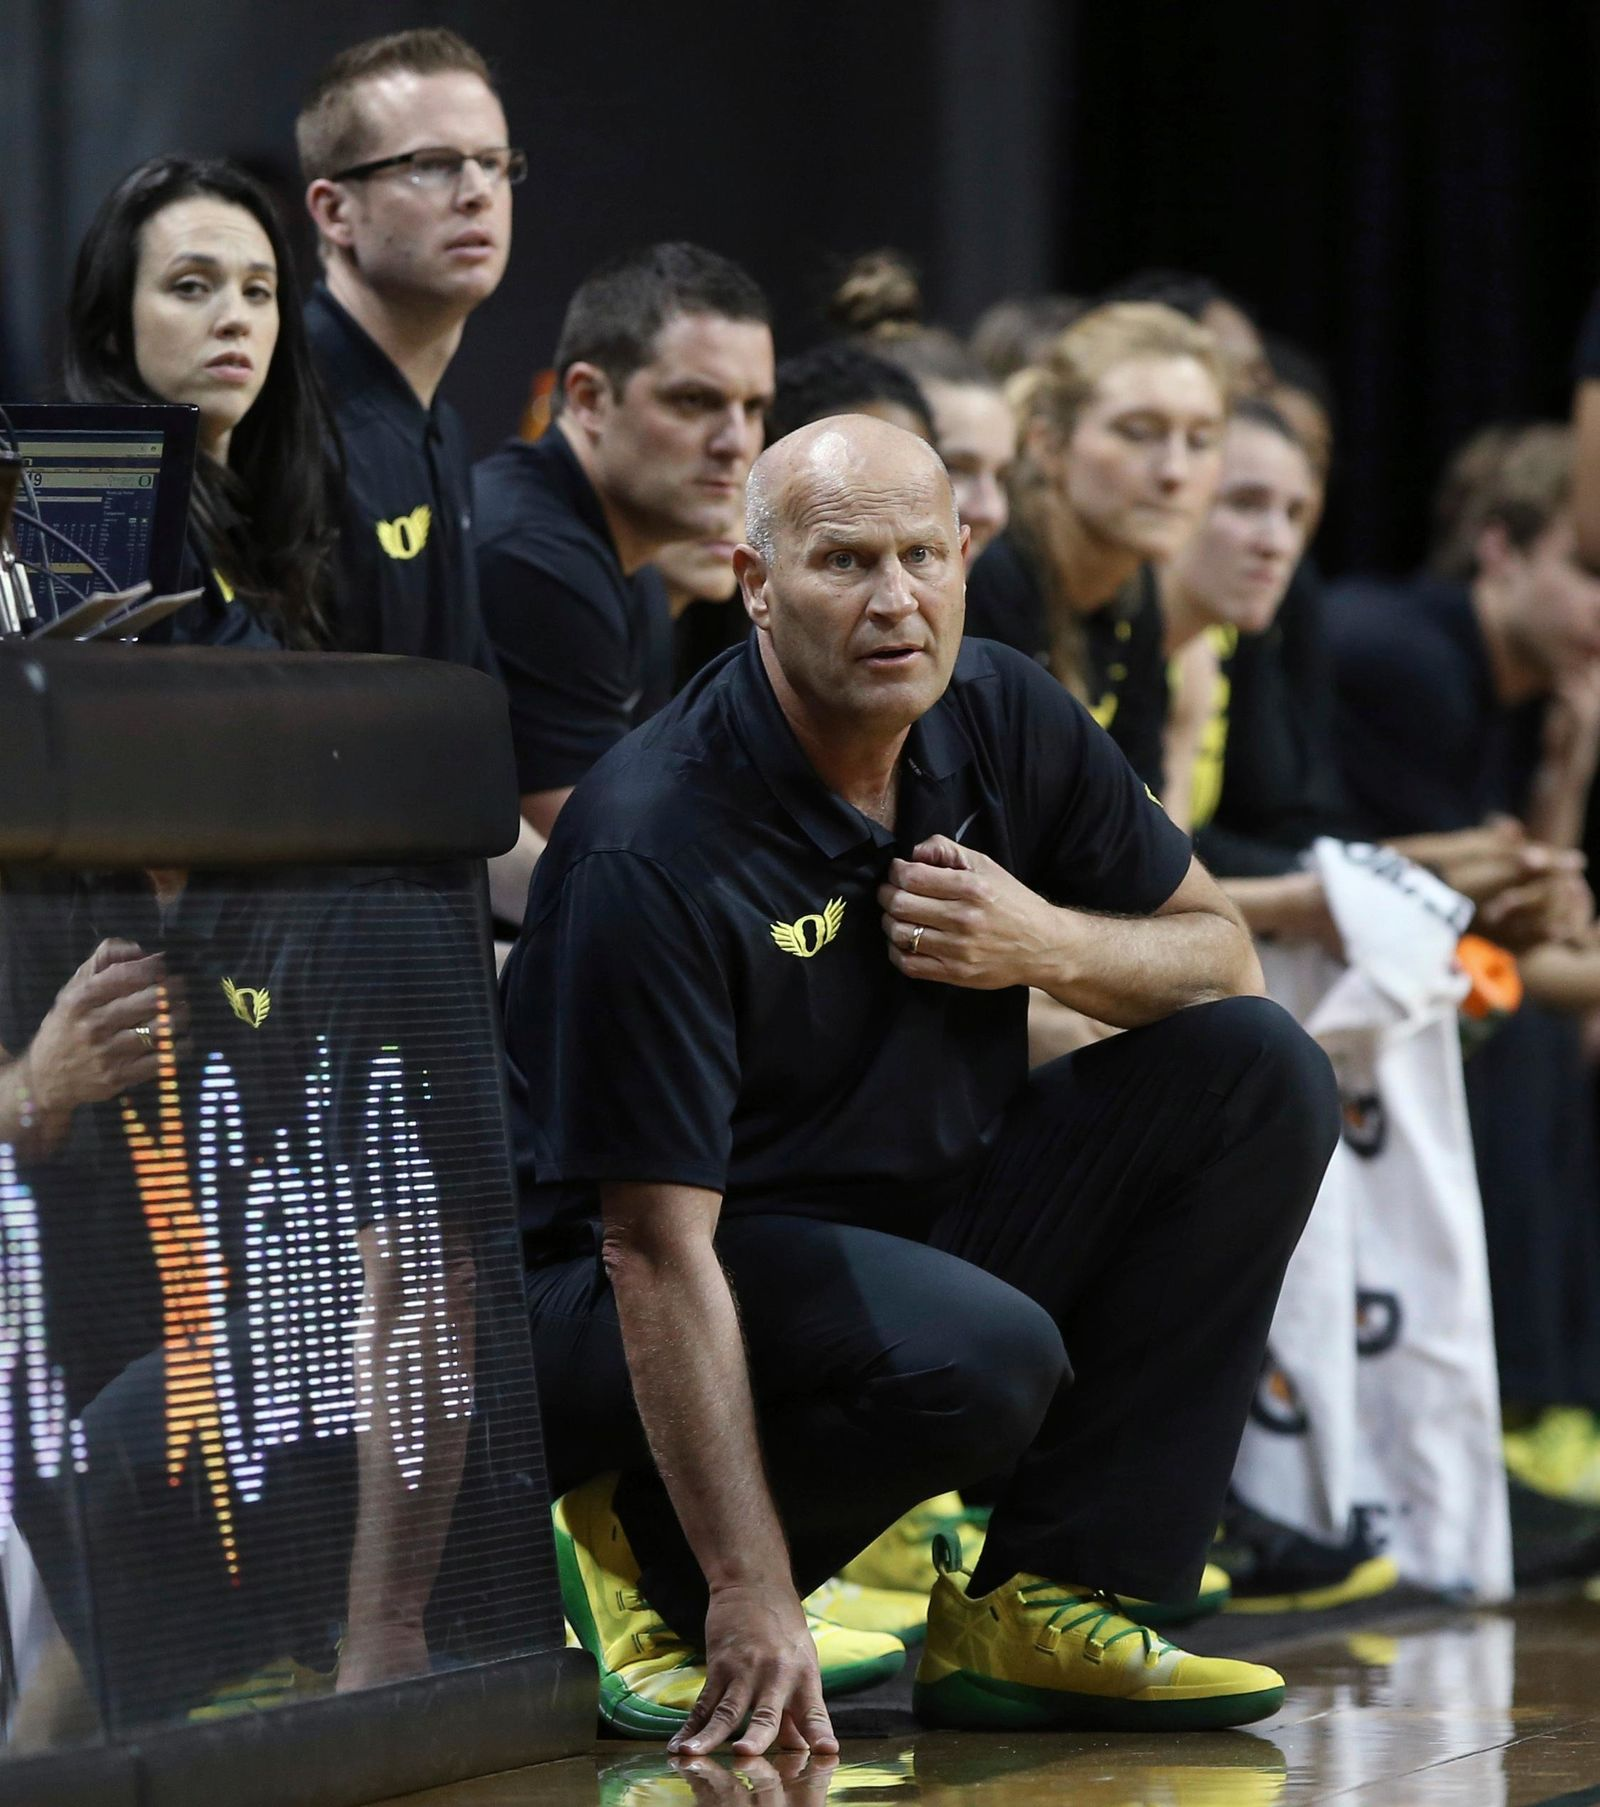 Oregon coach Kelly Graves watches from the bench area during the first half of the team's NCAA college basketball game against UCLA on Friday, Feb. 22, 2019, in Eugene, Ore. (AP Photo/Chris Pietsch)